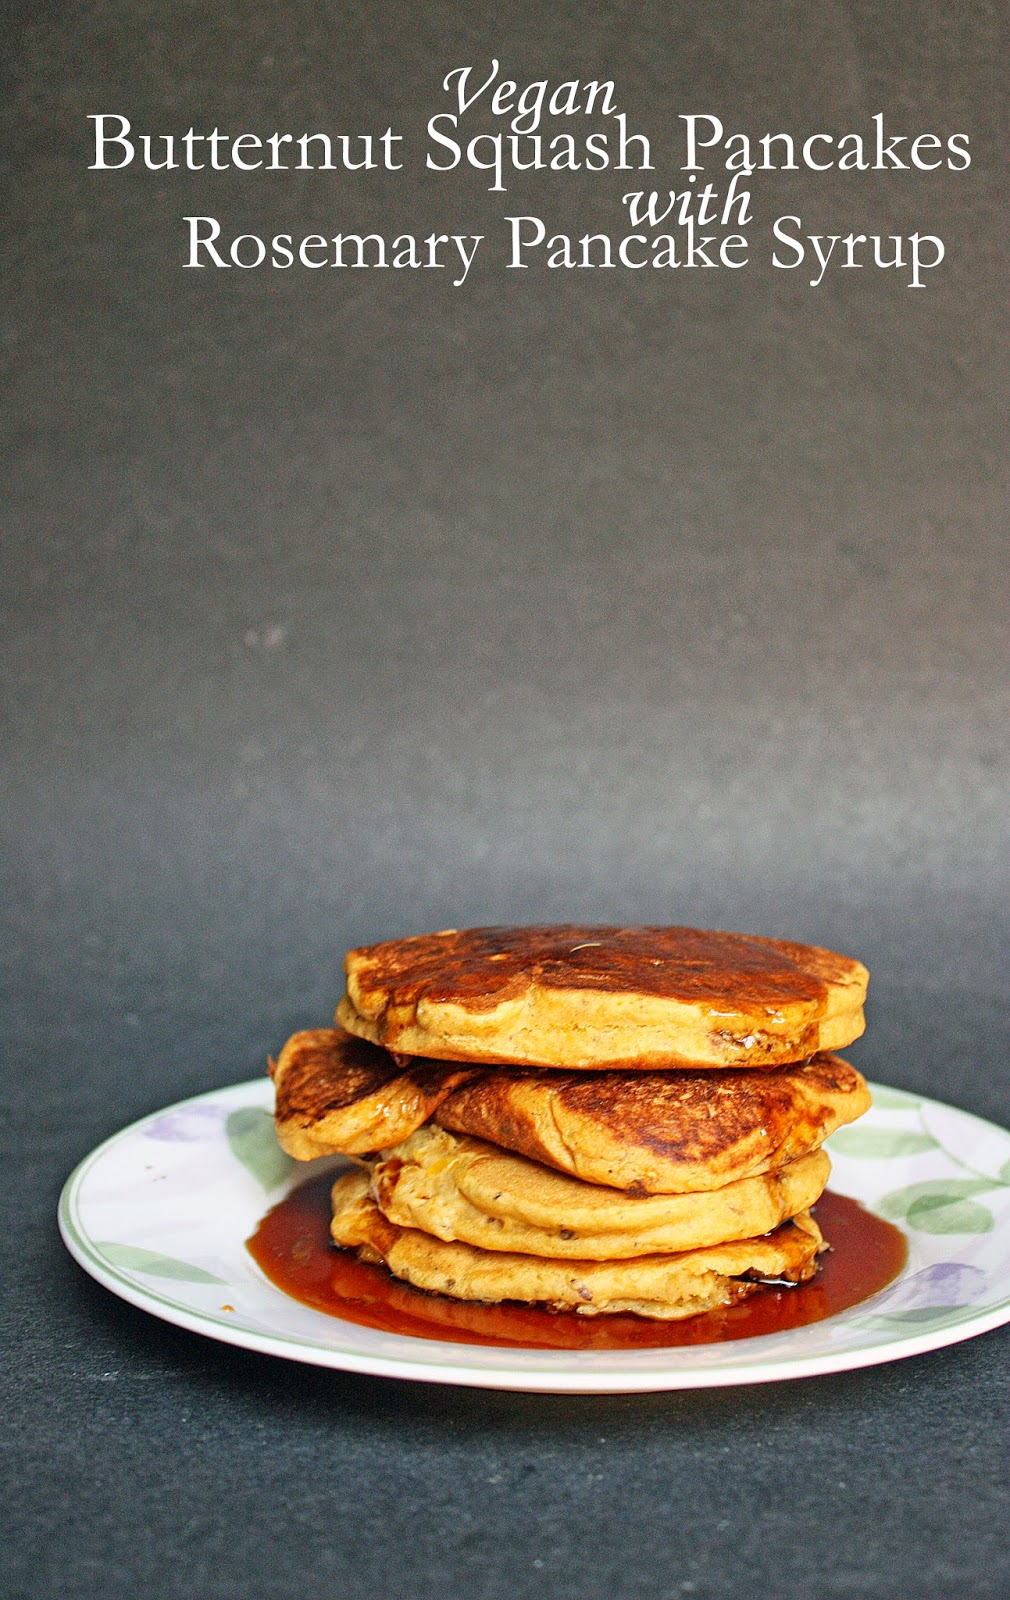 vegan butternut squash pancakes with homemade rosemary syrup